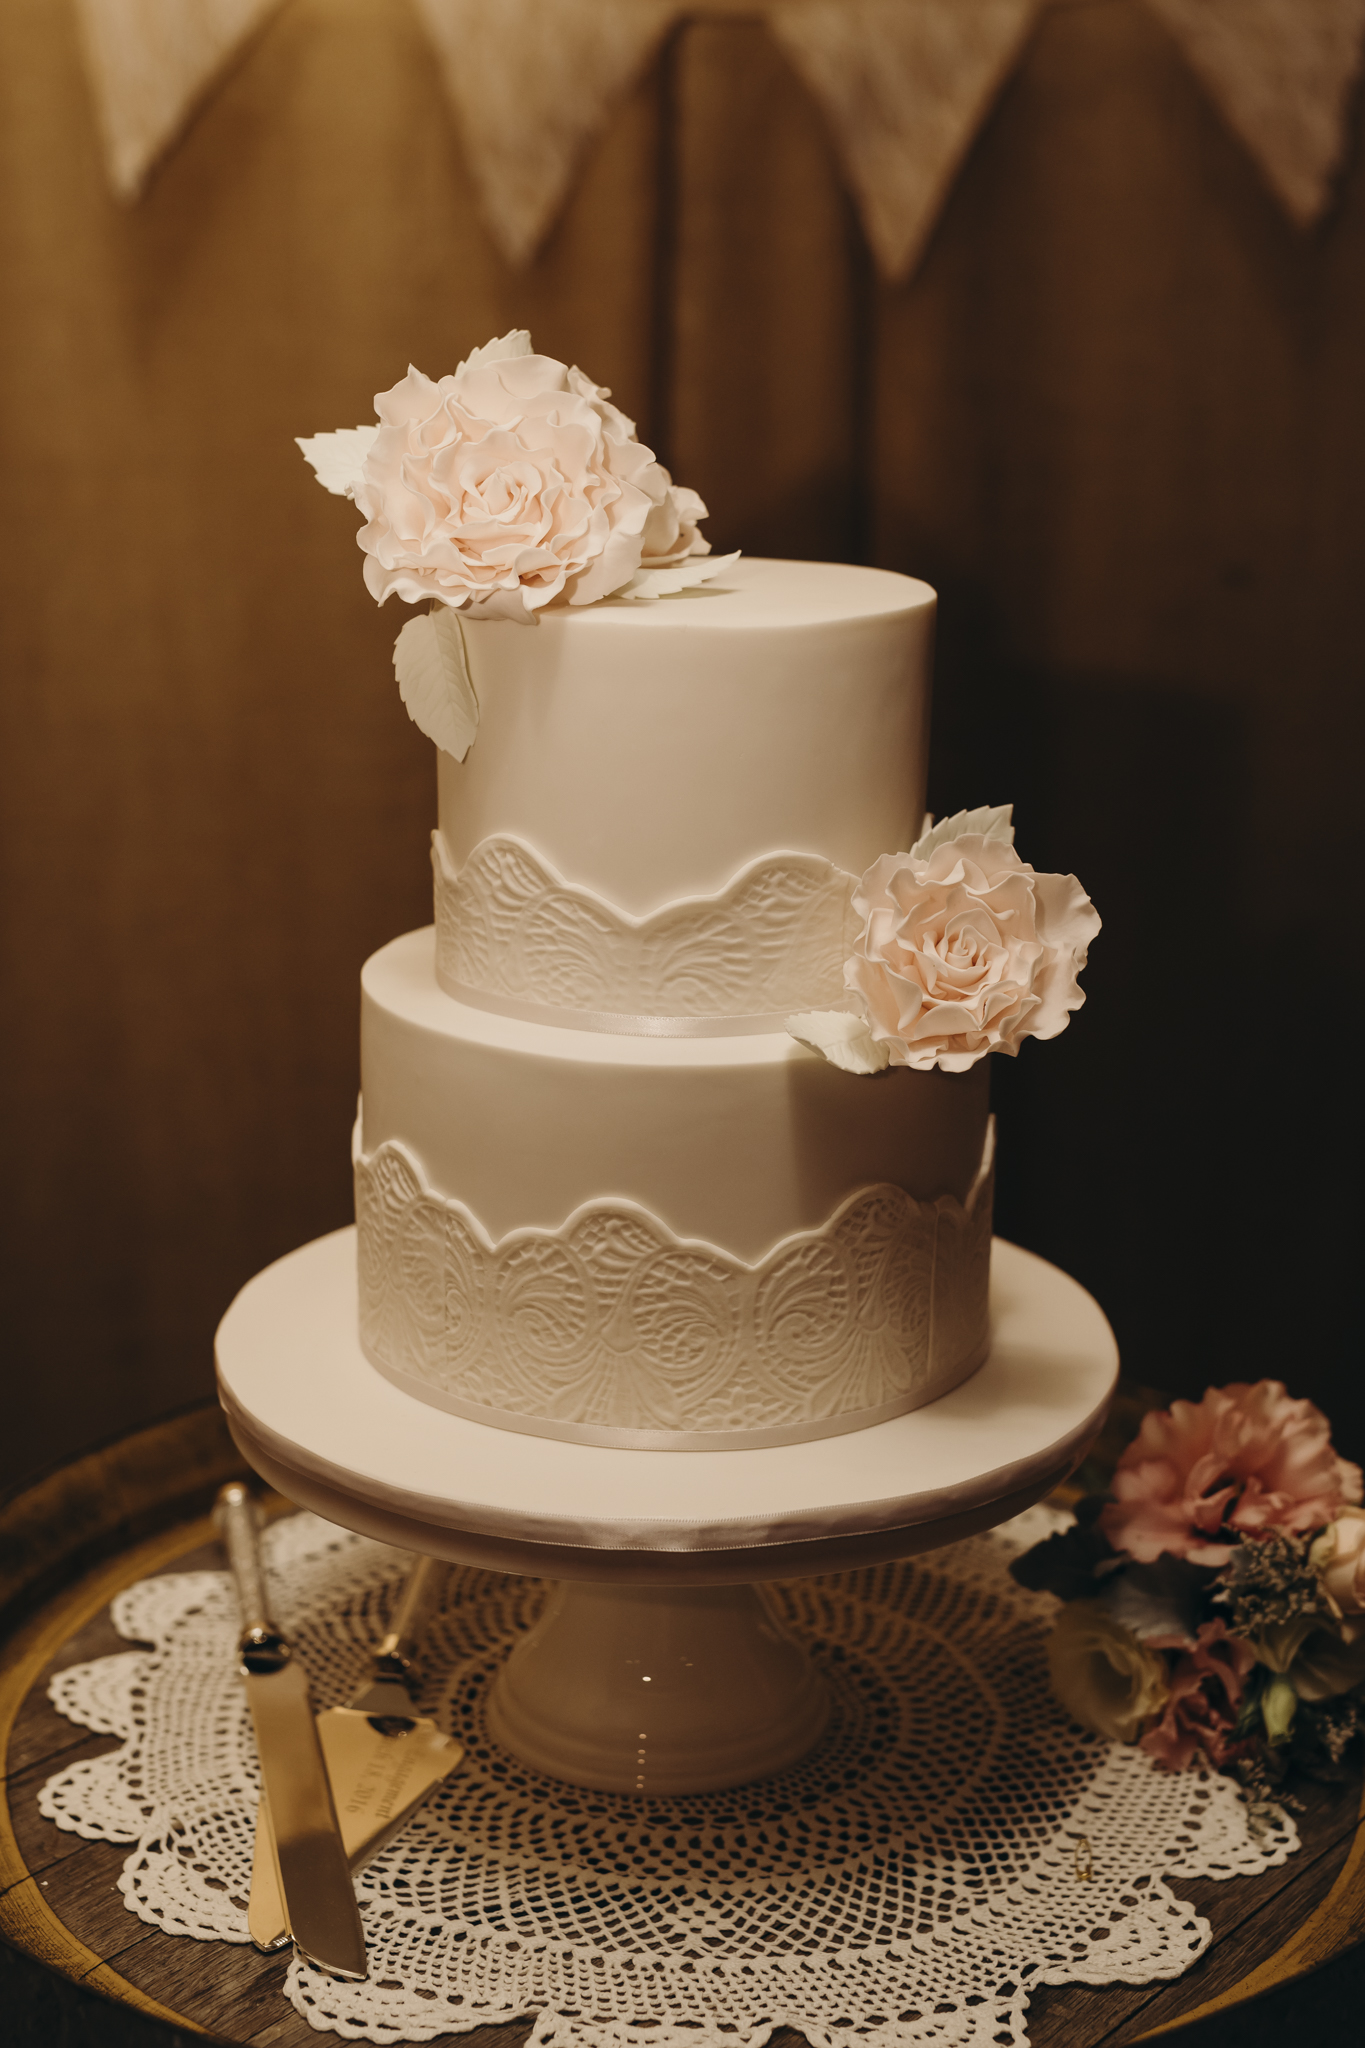 2 Tier White Lace & Sugar Flowers